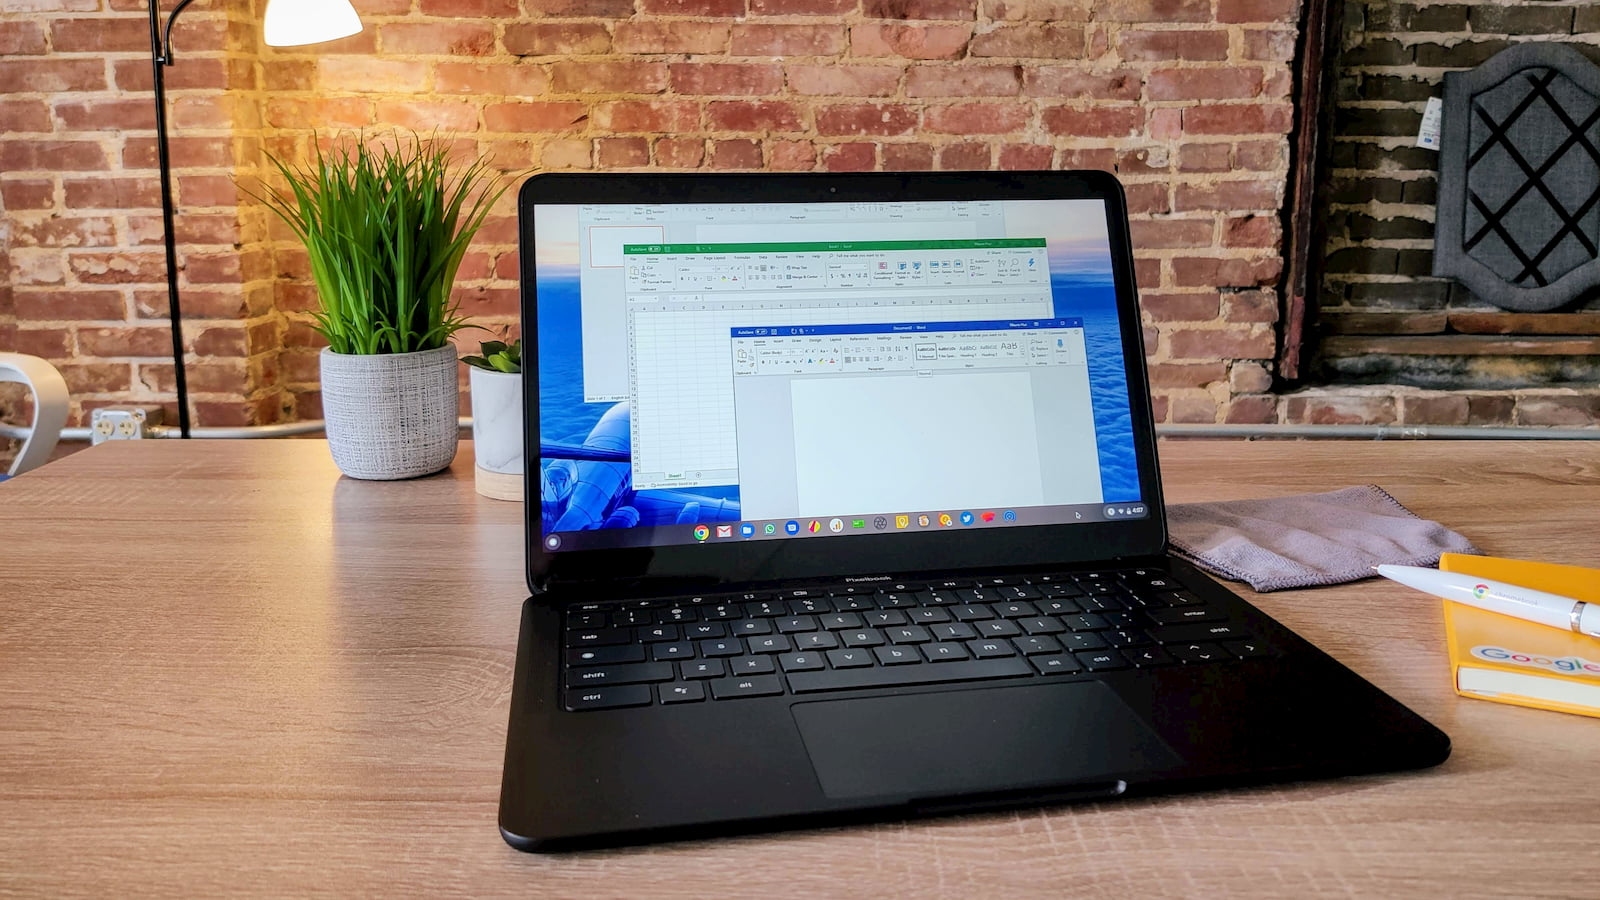 Development on Windows dual boot for Chromebooks has been resurrected for some reason